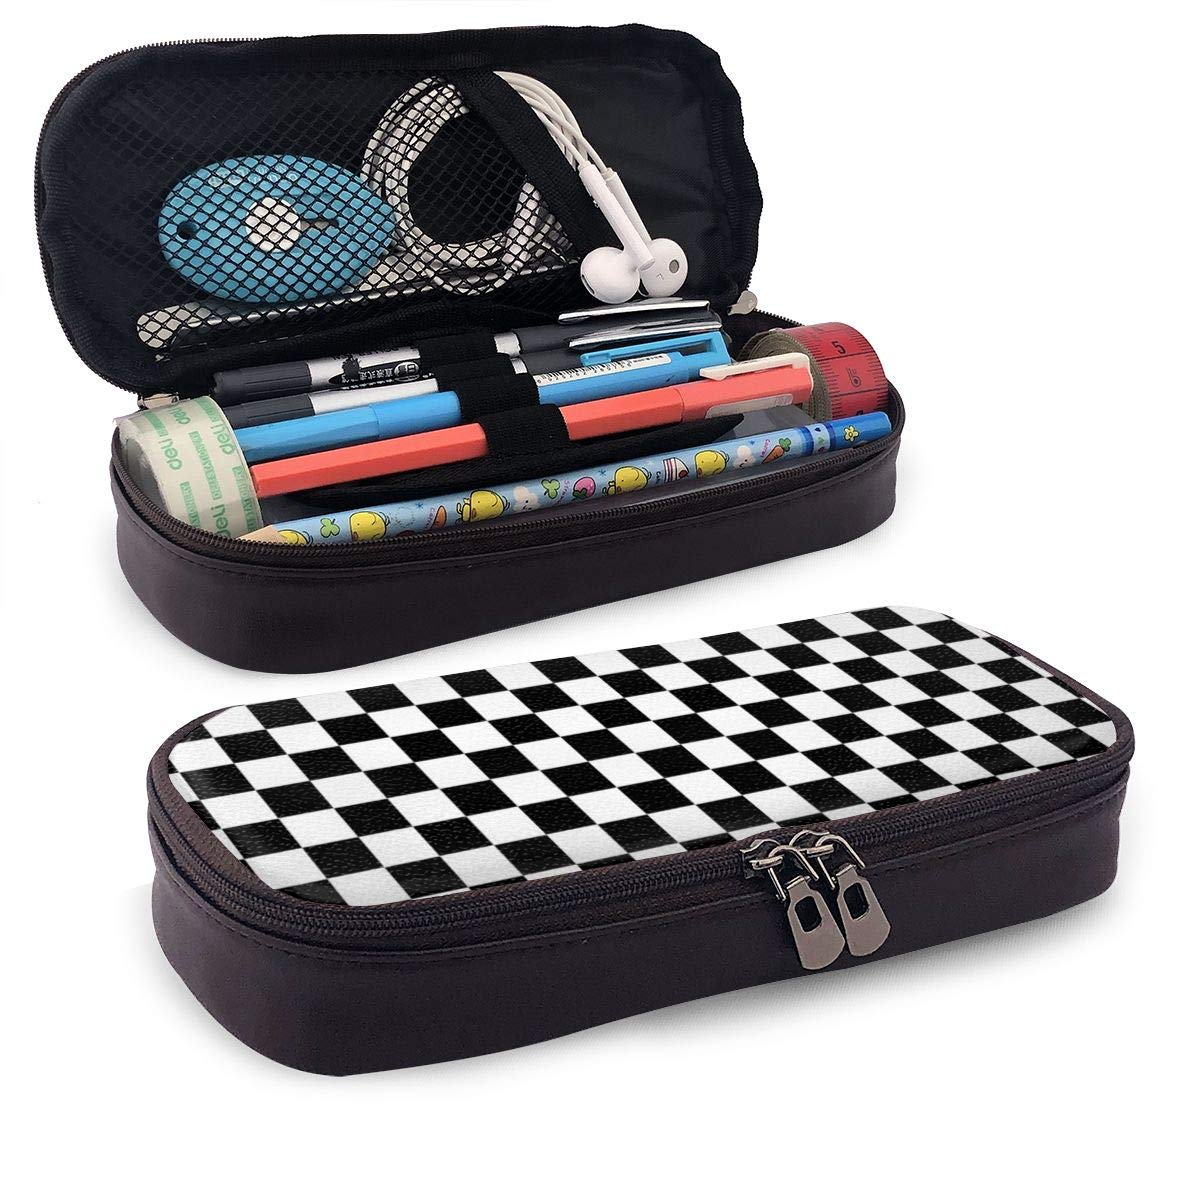 AHOOCUSTOM Checkerboard Black and White Large Capacity Leather Pencil Case Multi-Functional Stationery Pens Pouch Box with Zipper for Girls Boys or Adults (Brown)